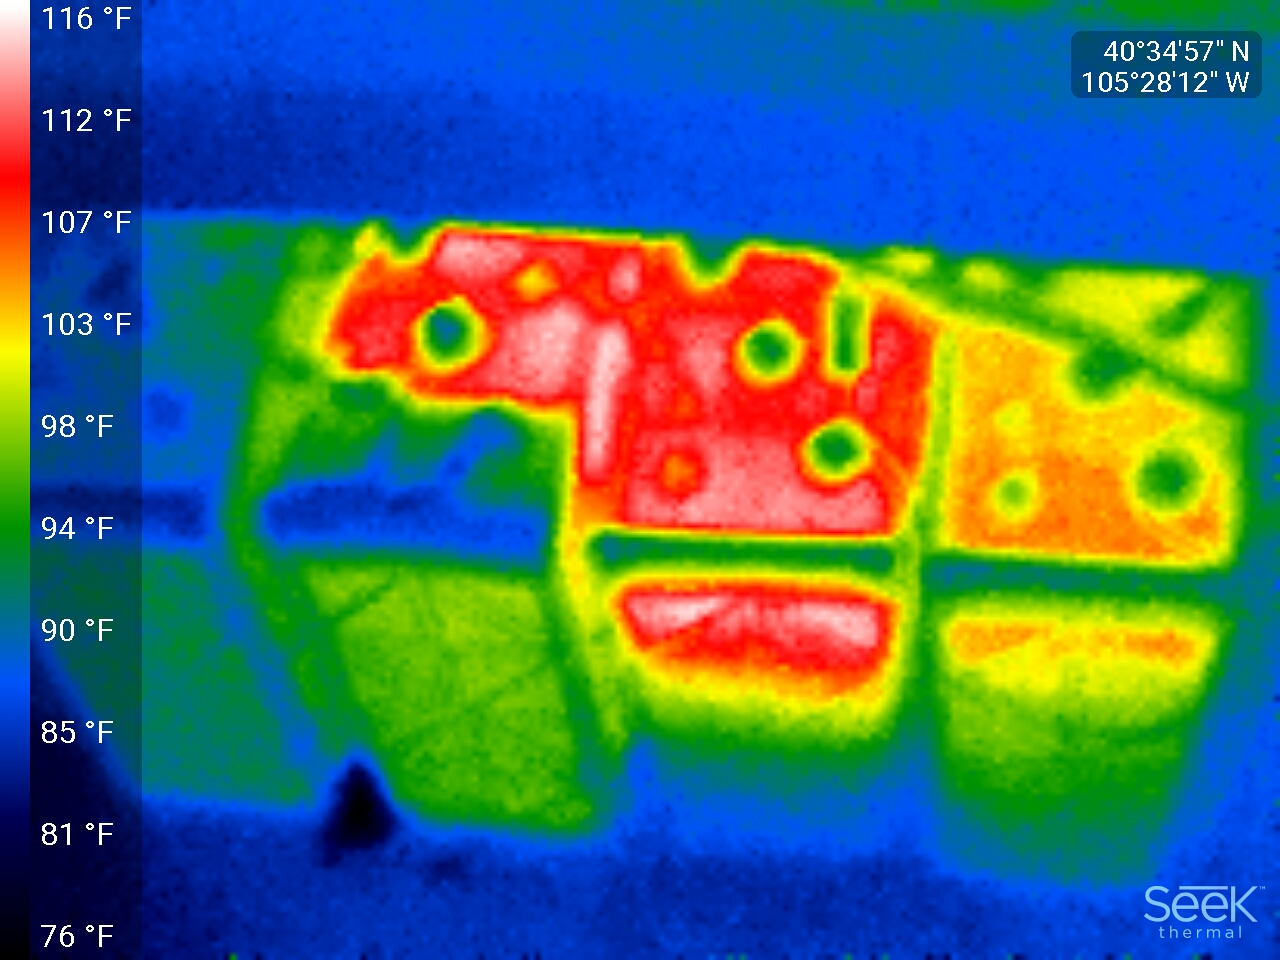 Bad battery thermal image